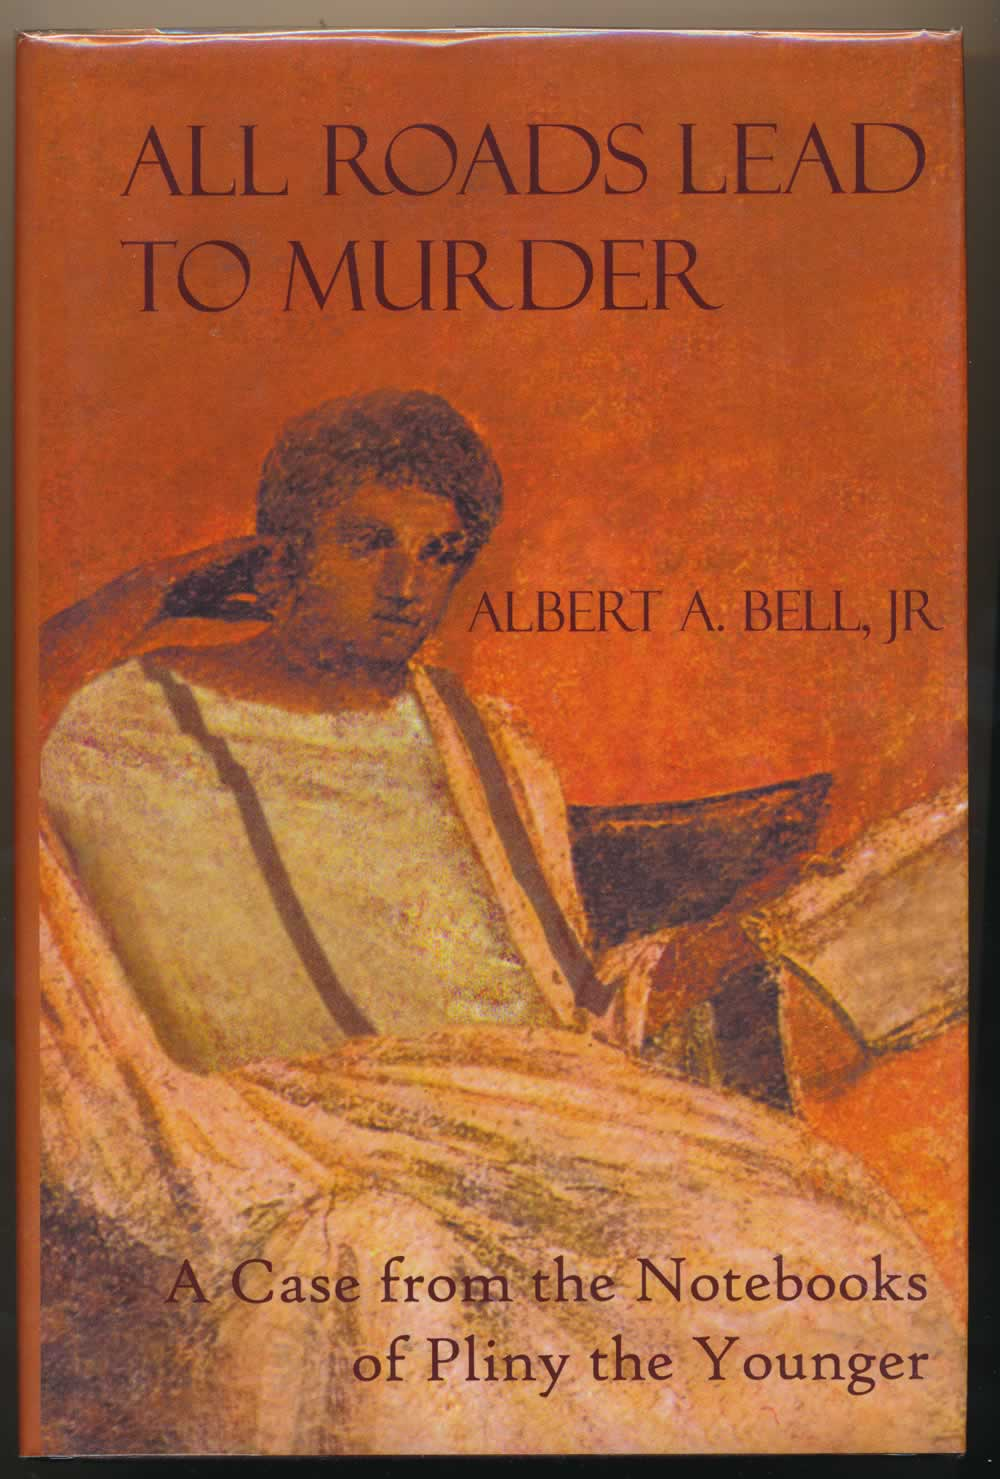 All roads lead to murder : a case from the notebooks of Pliny the Younger